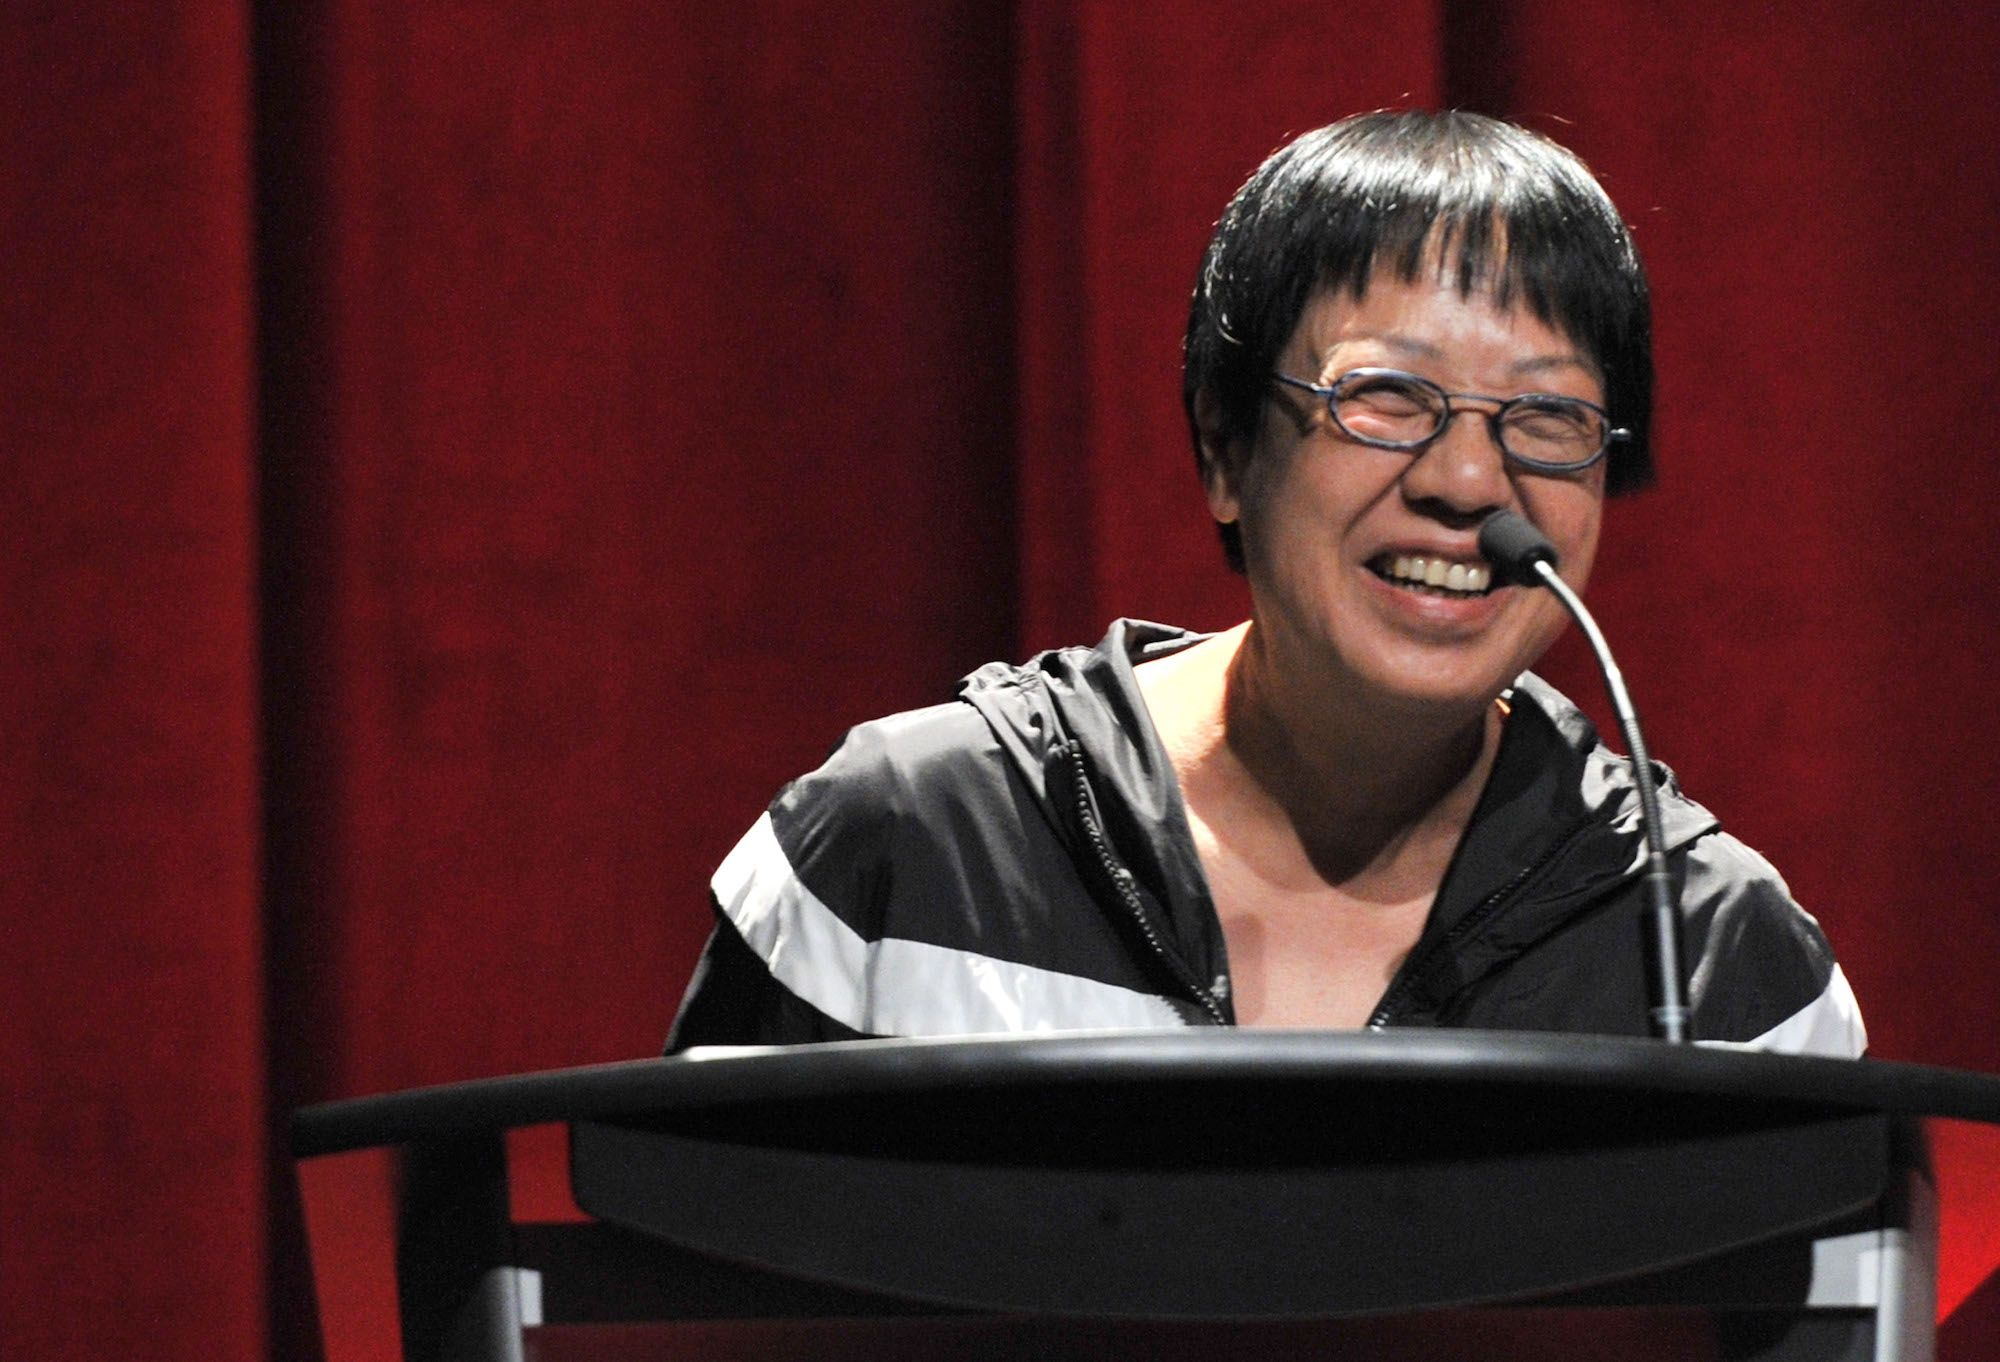 Hong Kong Director Ann Hui to Be Honoured at the Venice Film Festival